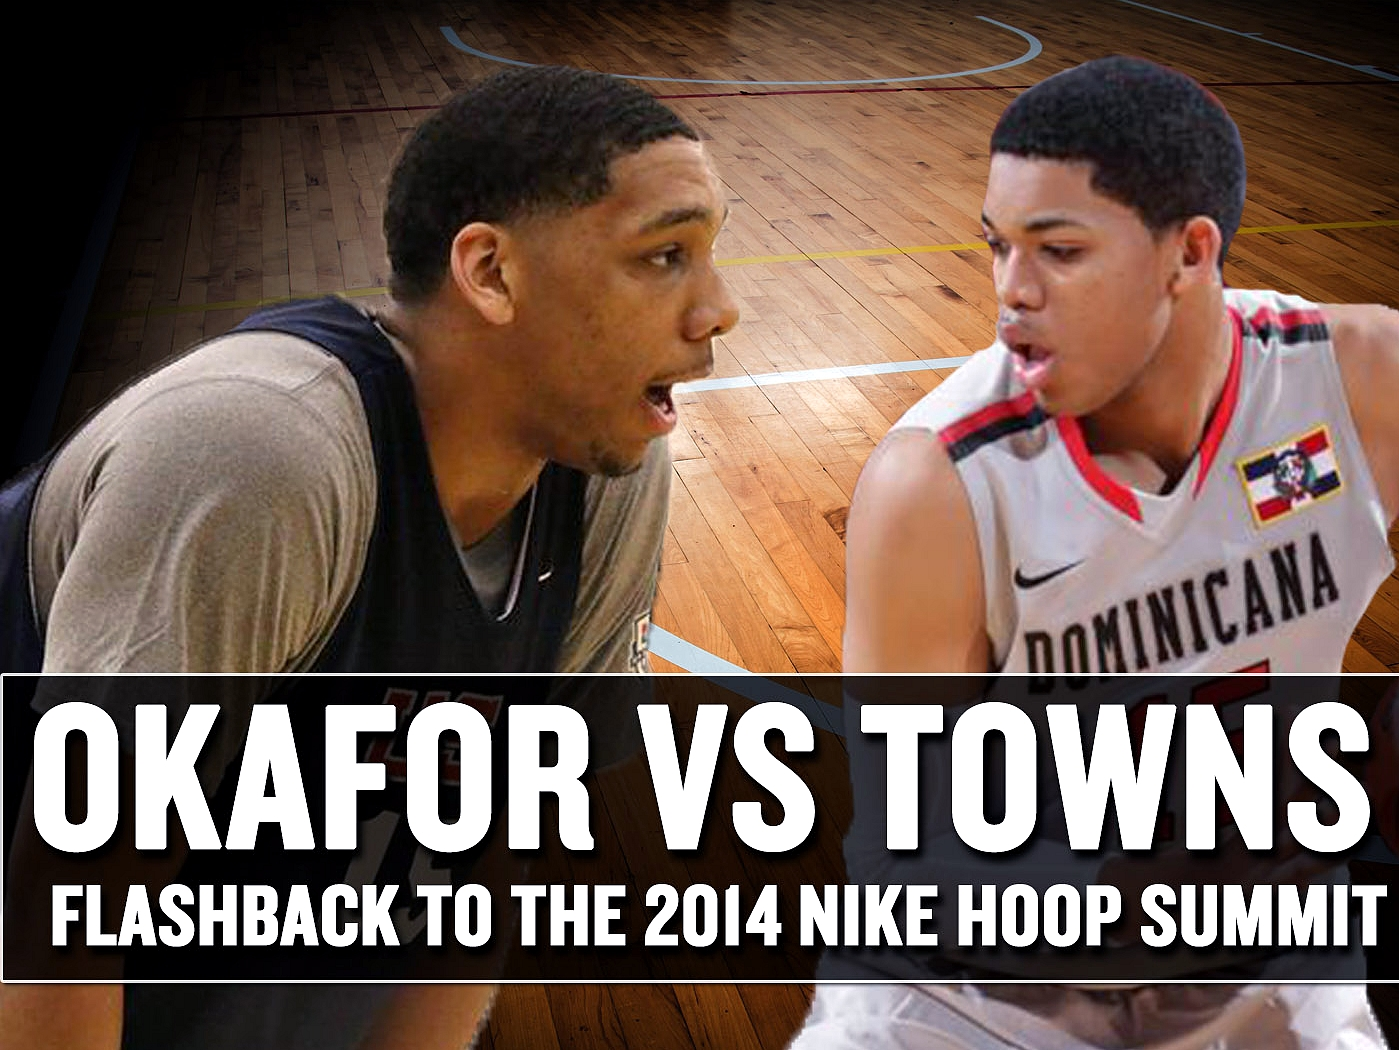 Jahlil Okafor vs Karl Towns - 2014 Nike Hoop Summit Flashback